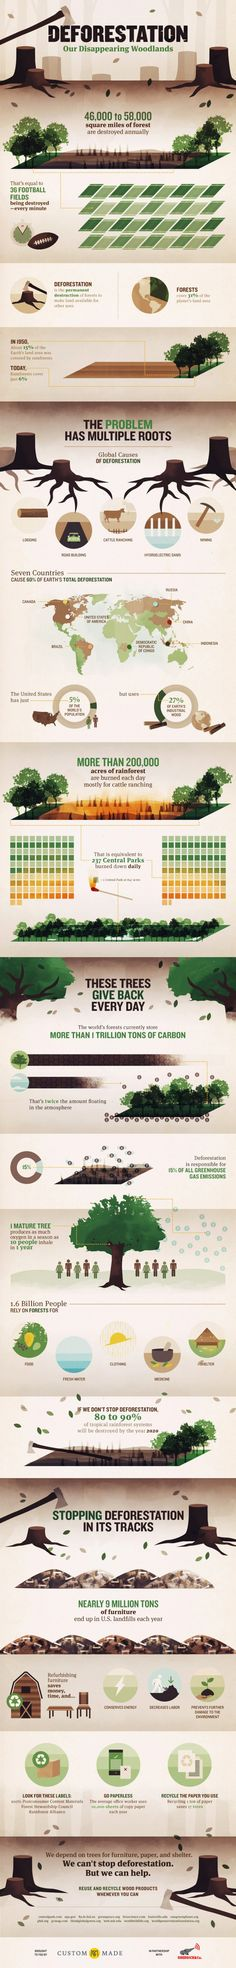 #Deforestation Our Disappearing Woodlands